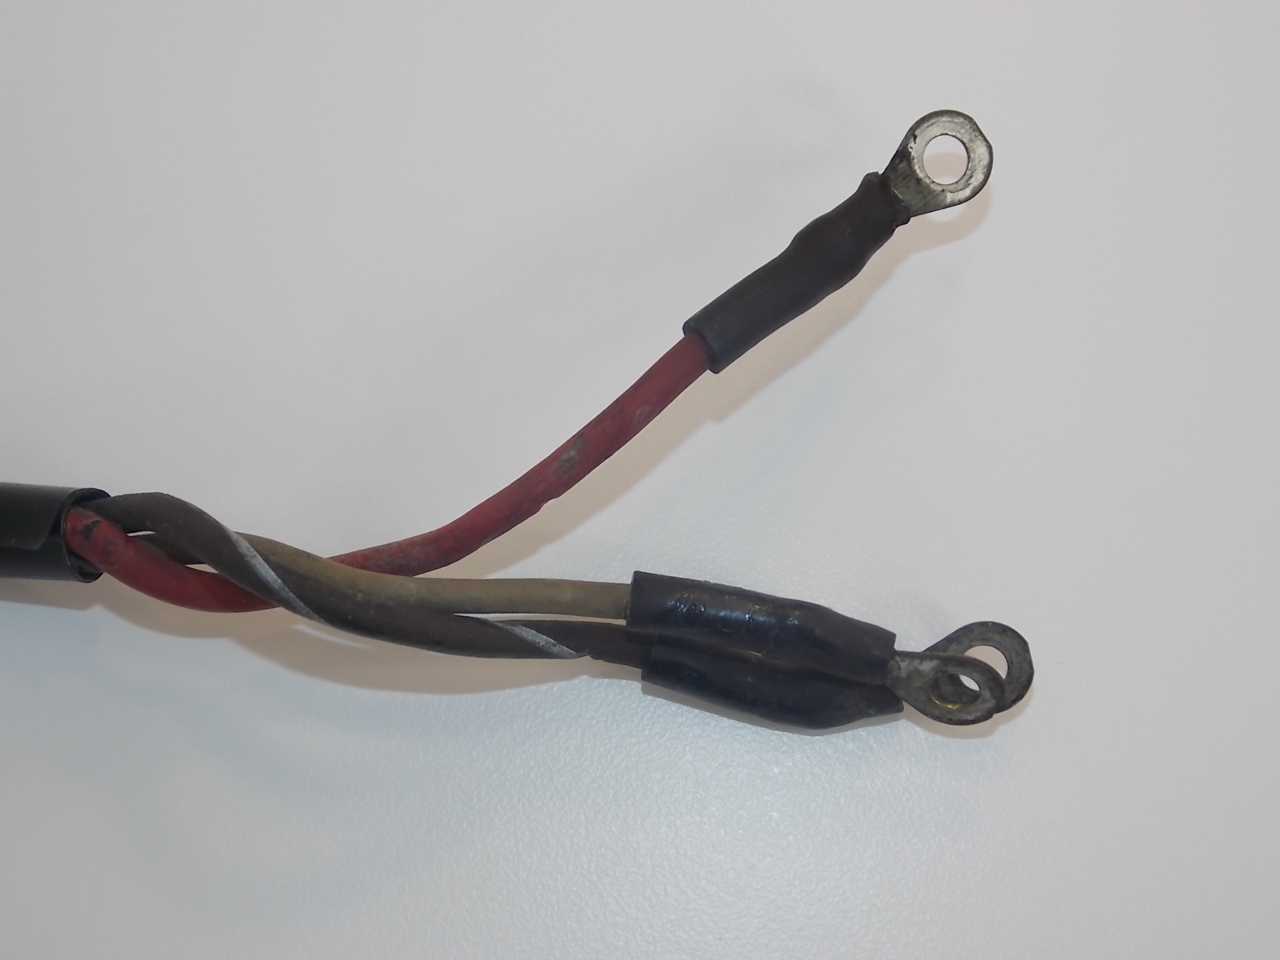 6e5 82590 12 00 Outboard On Yamaha Outboard Wiring Harness Extension